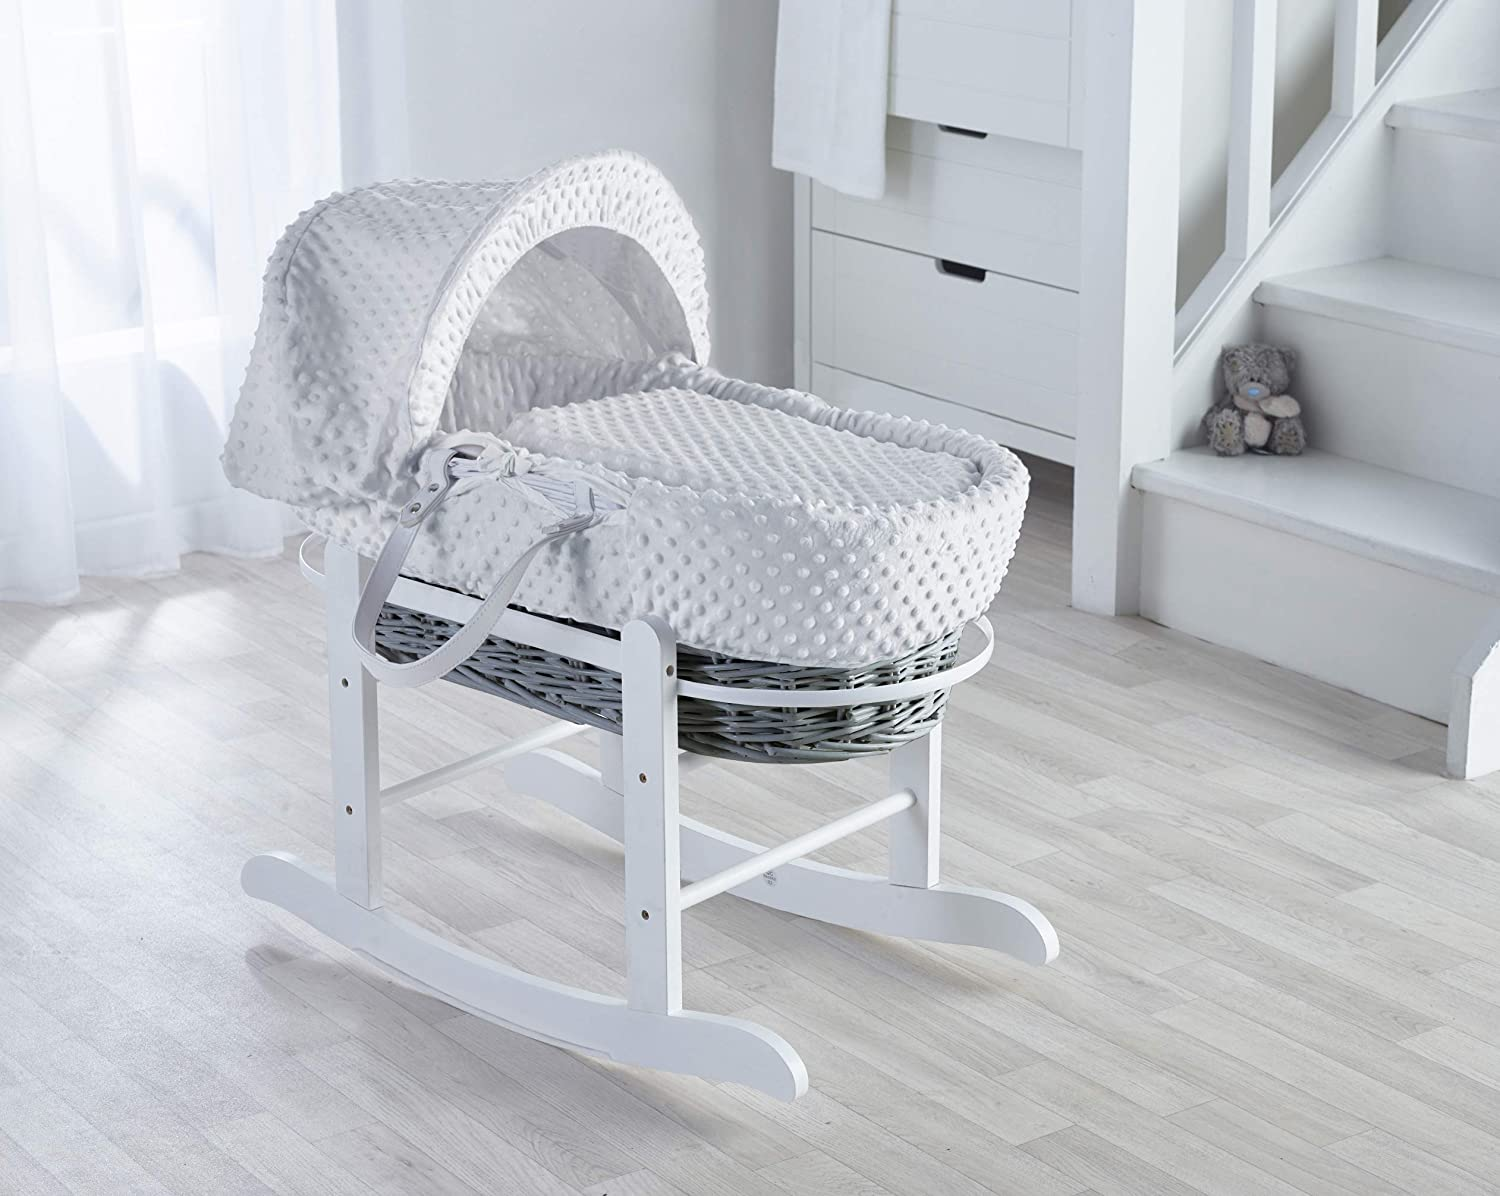 White Dimple on Grey Wicker Padded Moses Basket & Deluxe White Rocking Stand. Elegant Baby